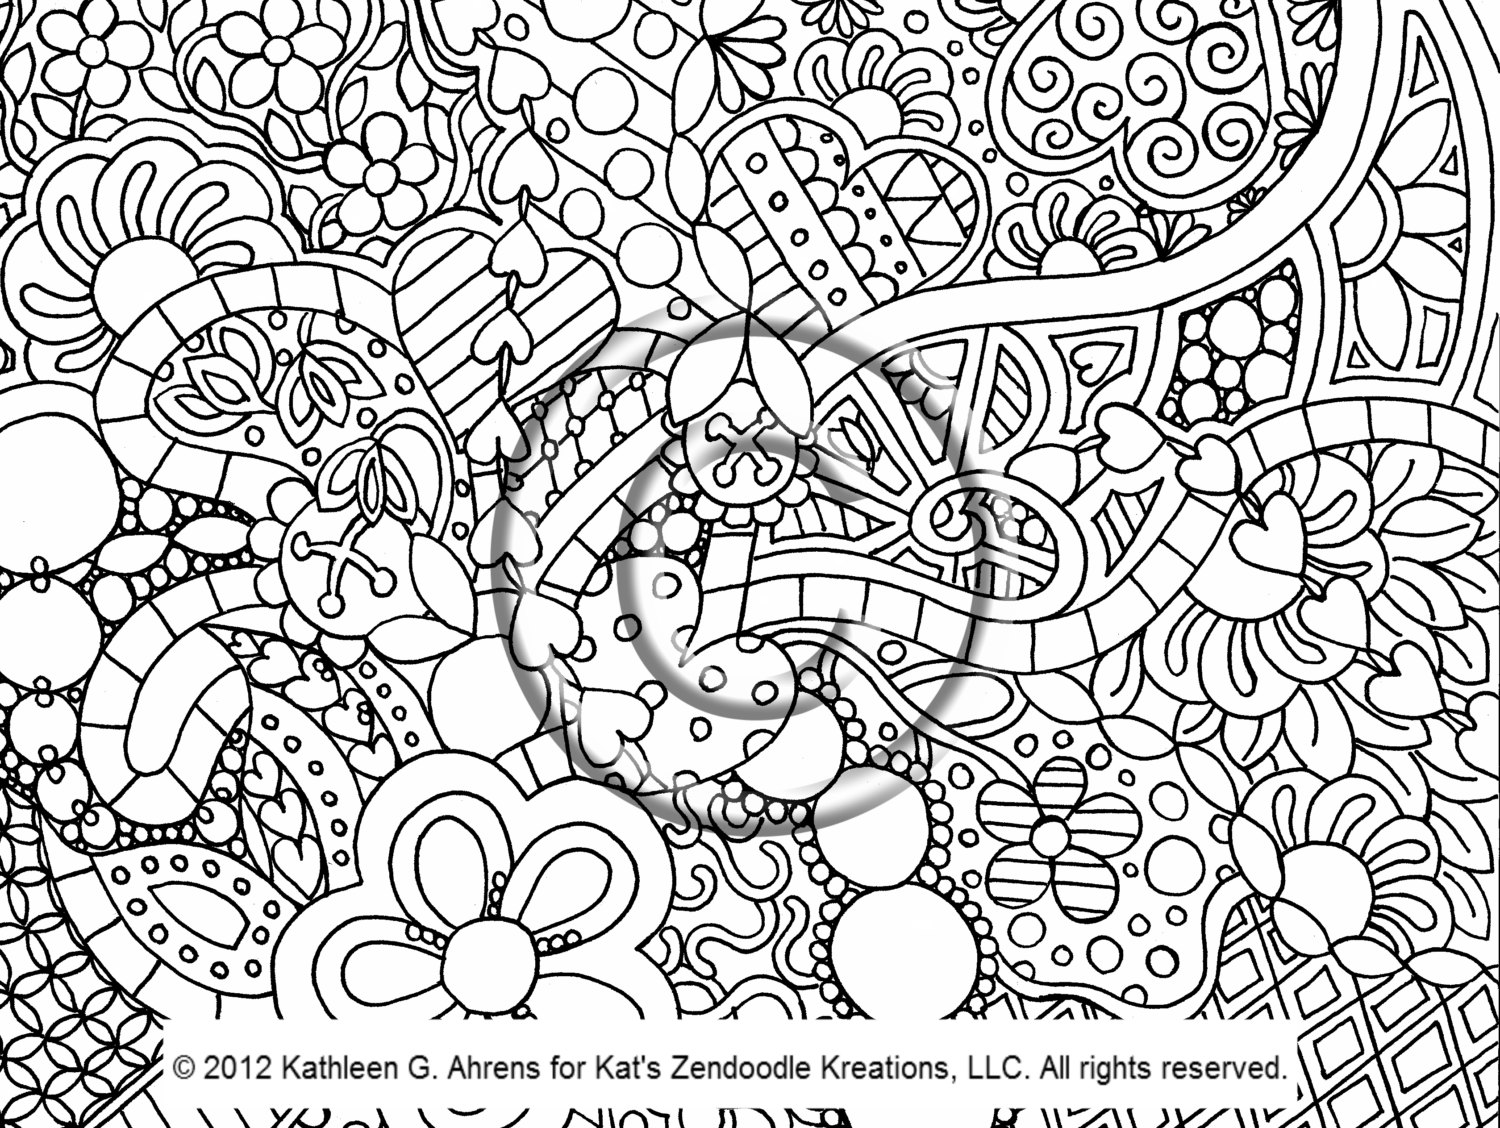 trippy coloring sheets trippy shroom drawing at getdrawings free download trippy coloring sheets